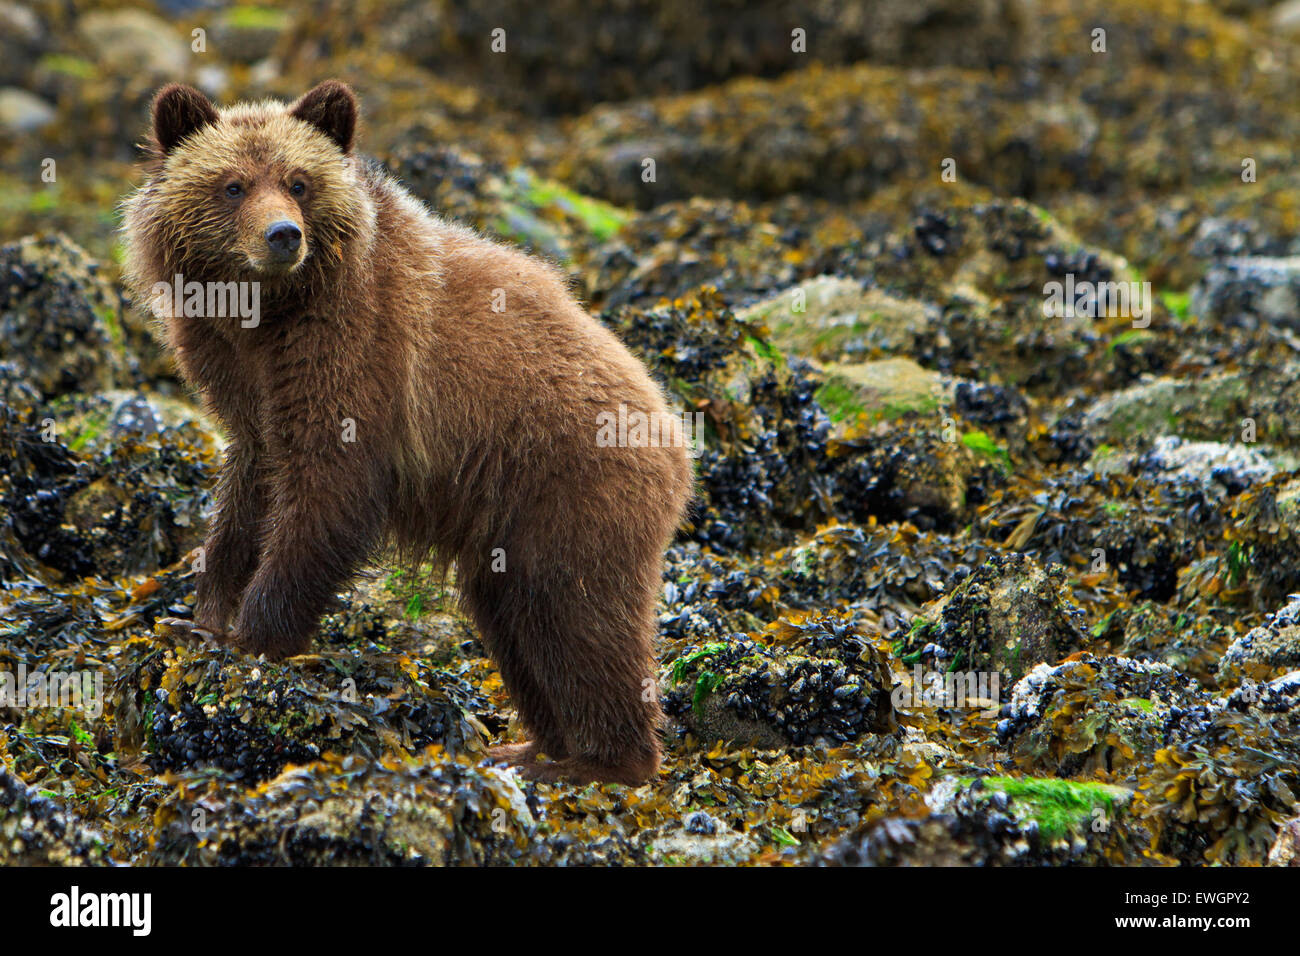 Coastal Grizzly bear cub searching for food at low tide on the British Columbia Mainland, Canada - Stock Image